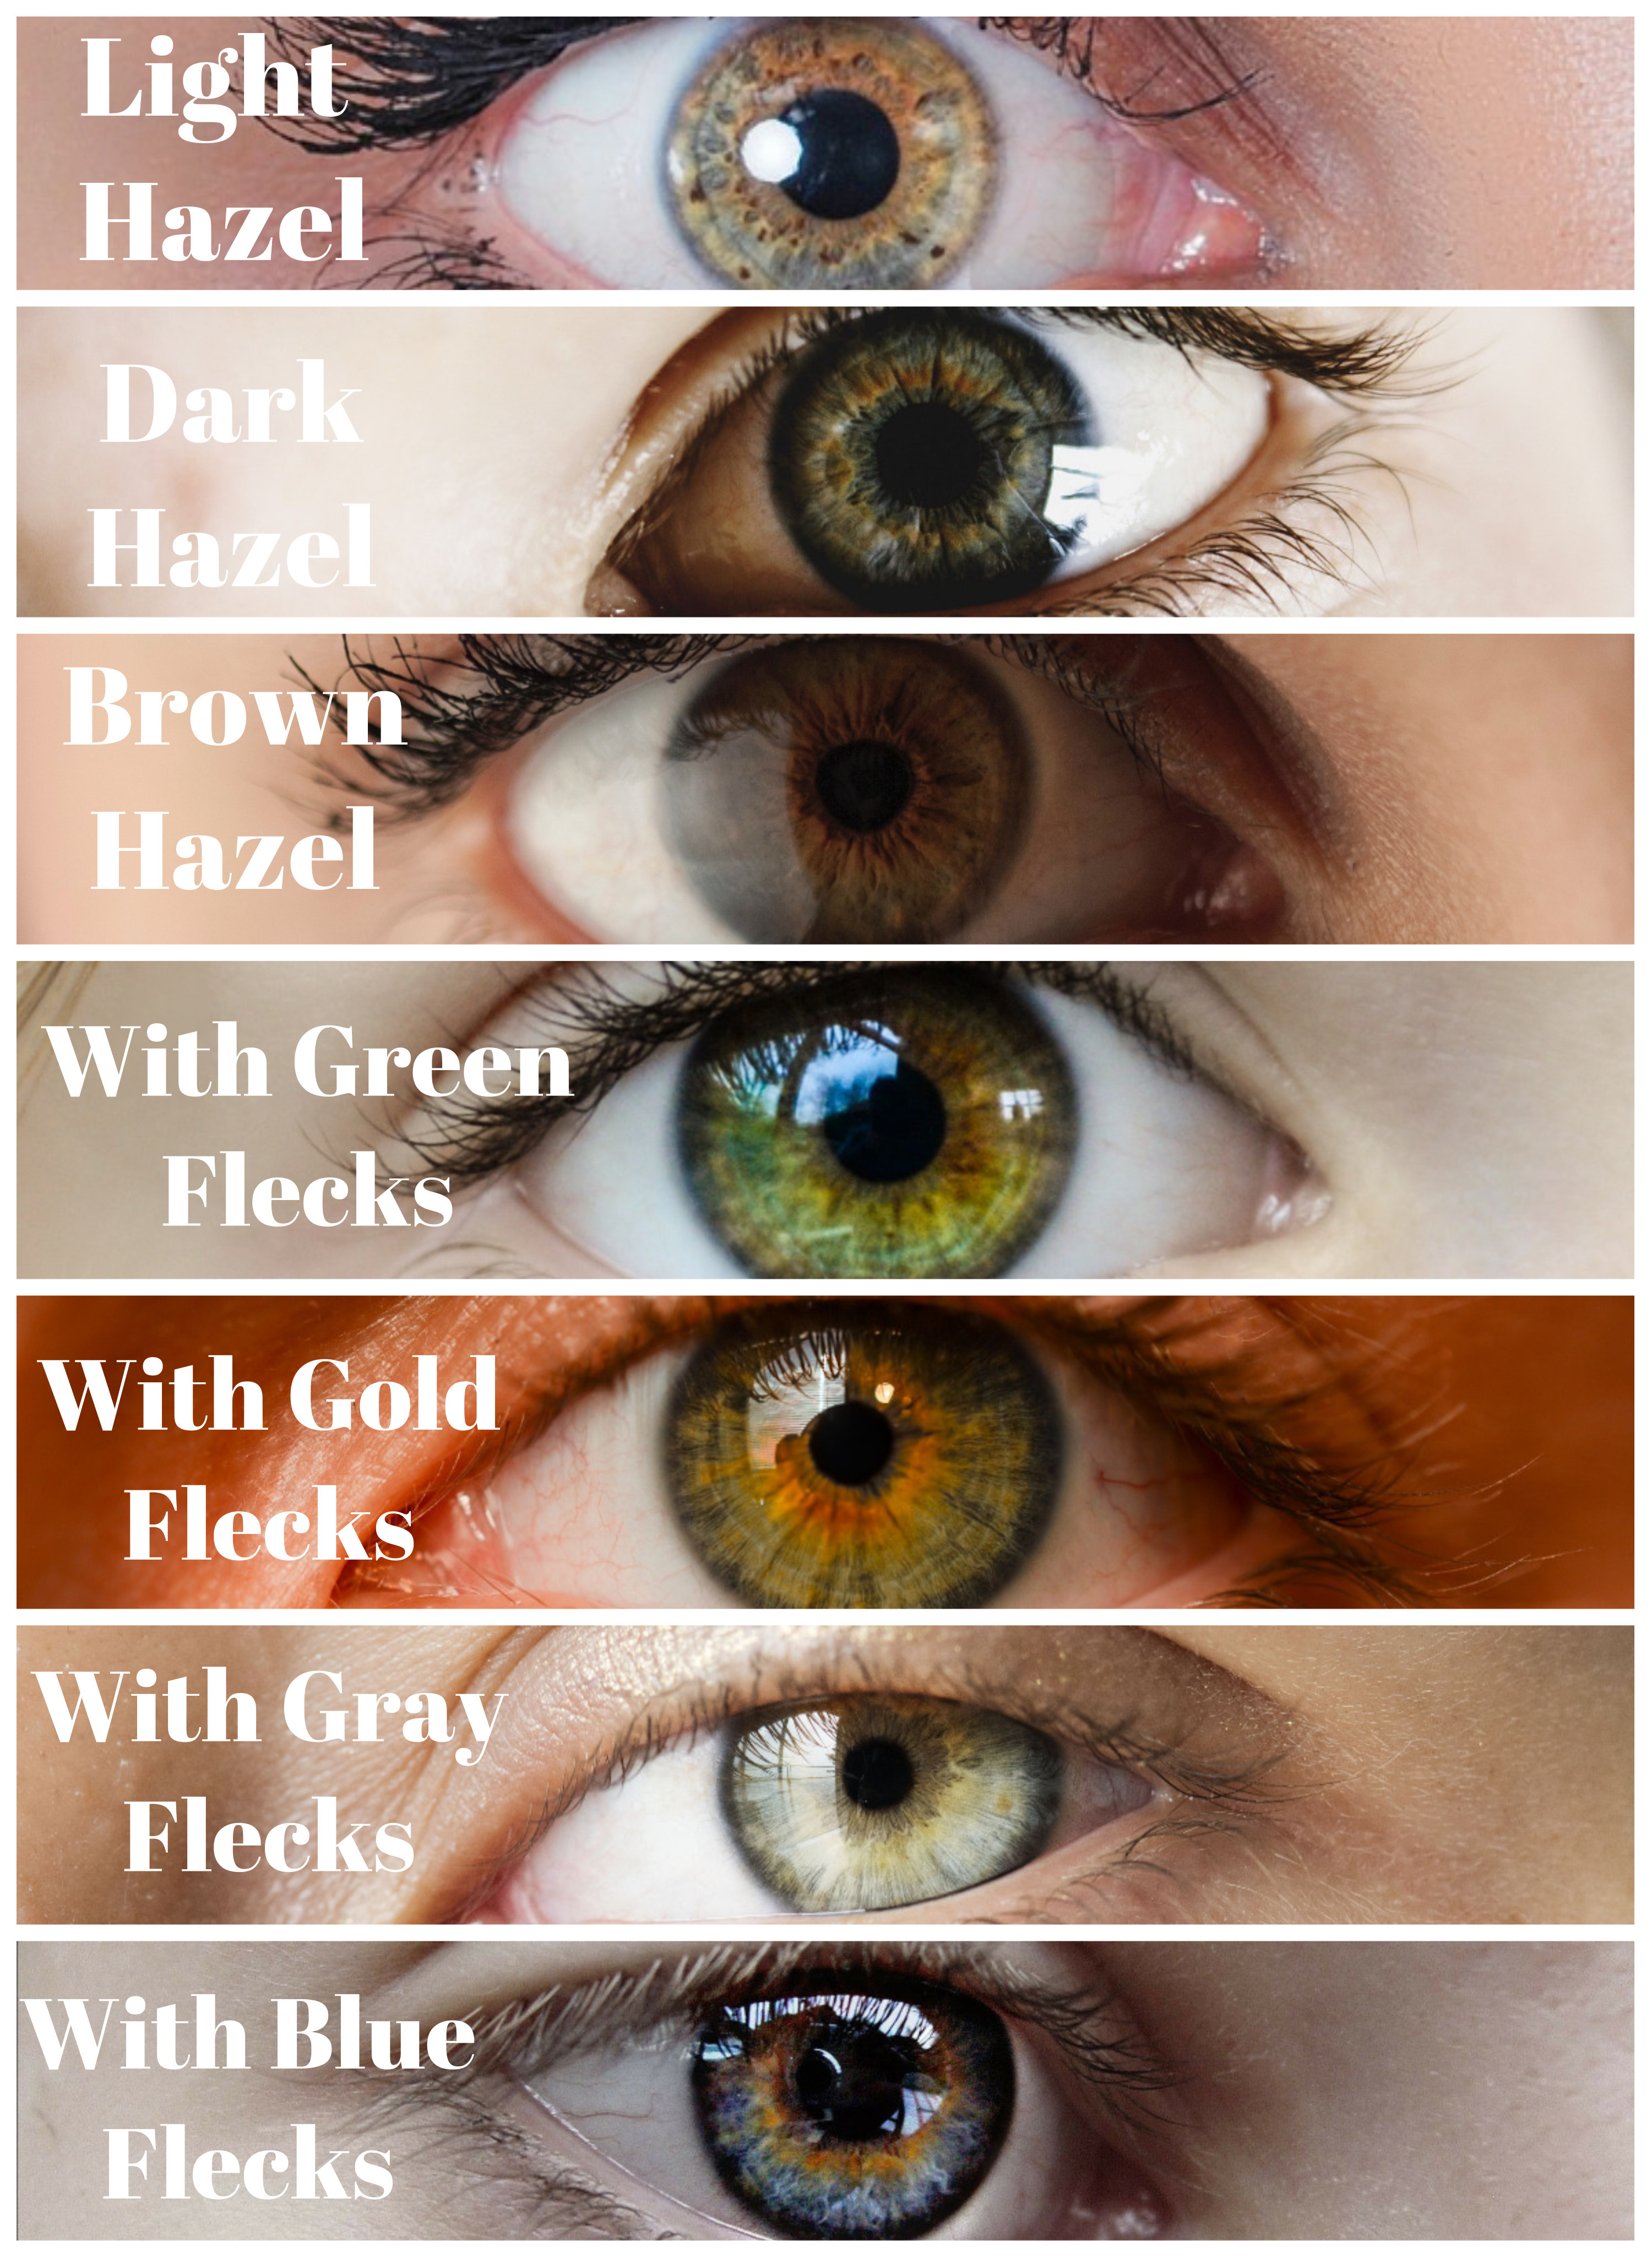 what is the best hair color for hazel eyes? - hair adviser